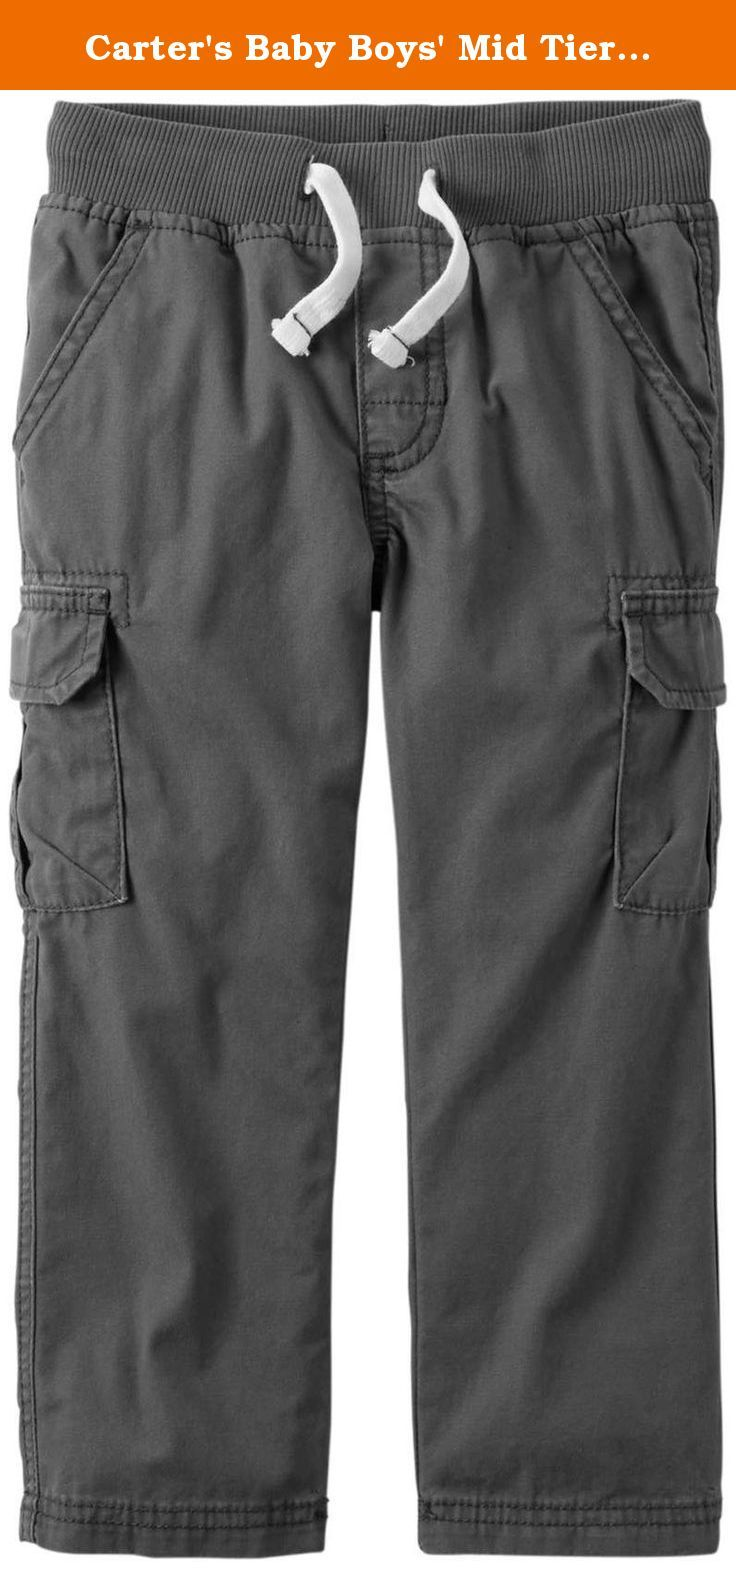 Carter's Baby Boys' Mid Tier Pants - Gray - 18 Months. Mid Tier Pants (Baby) - Gray Carter's is the leading brand of children's clothing, gifts and accessories in America, selling more than 10 products for every child born in the U.S. The designs are based on a heritage of quality and innovation that has earned them the trust of generations of families.